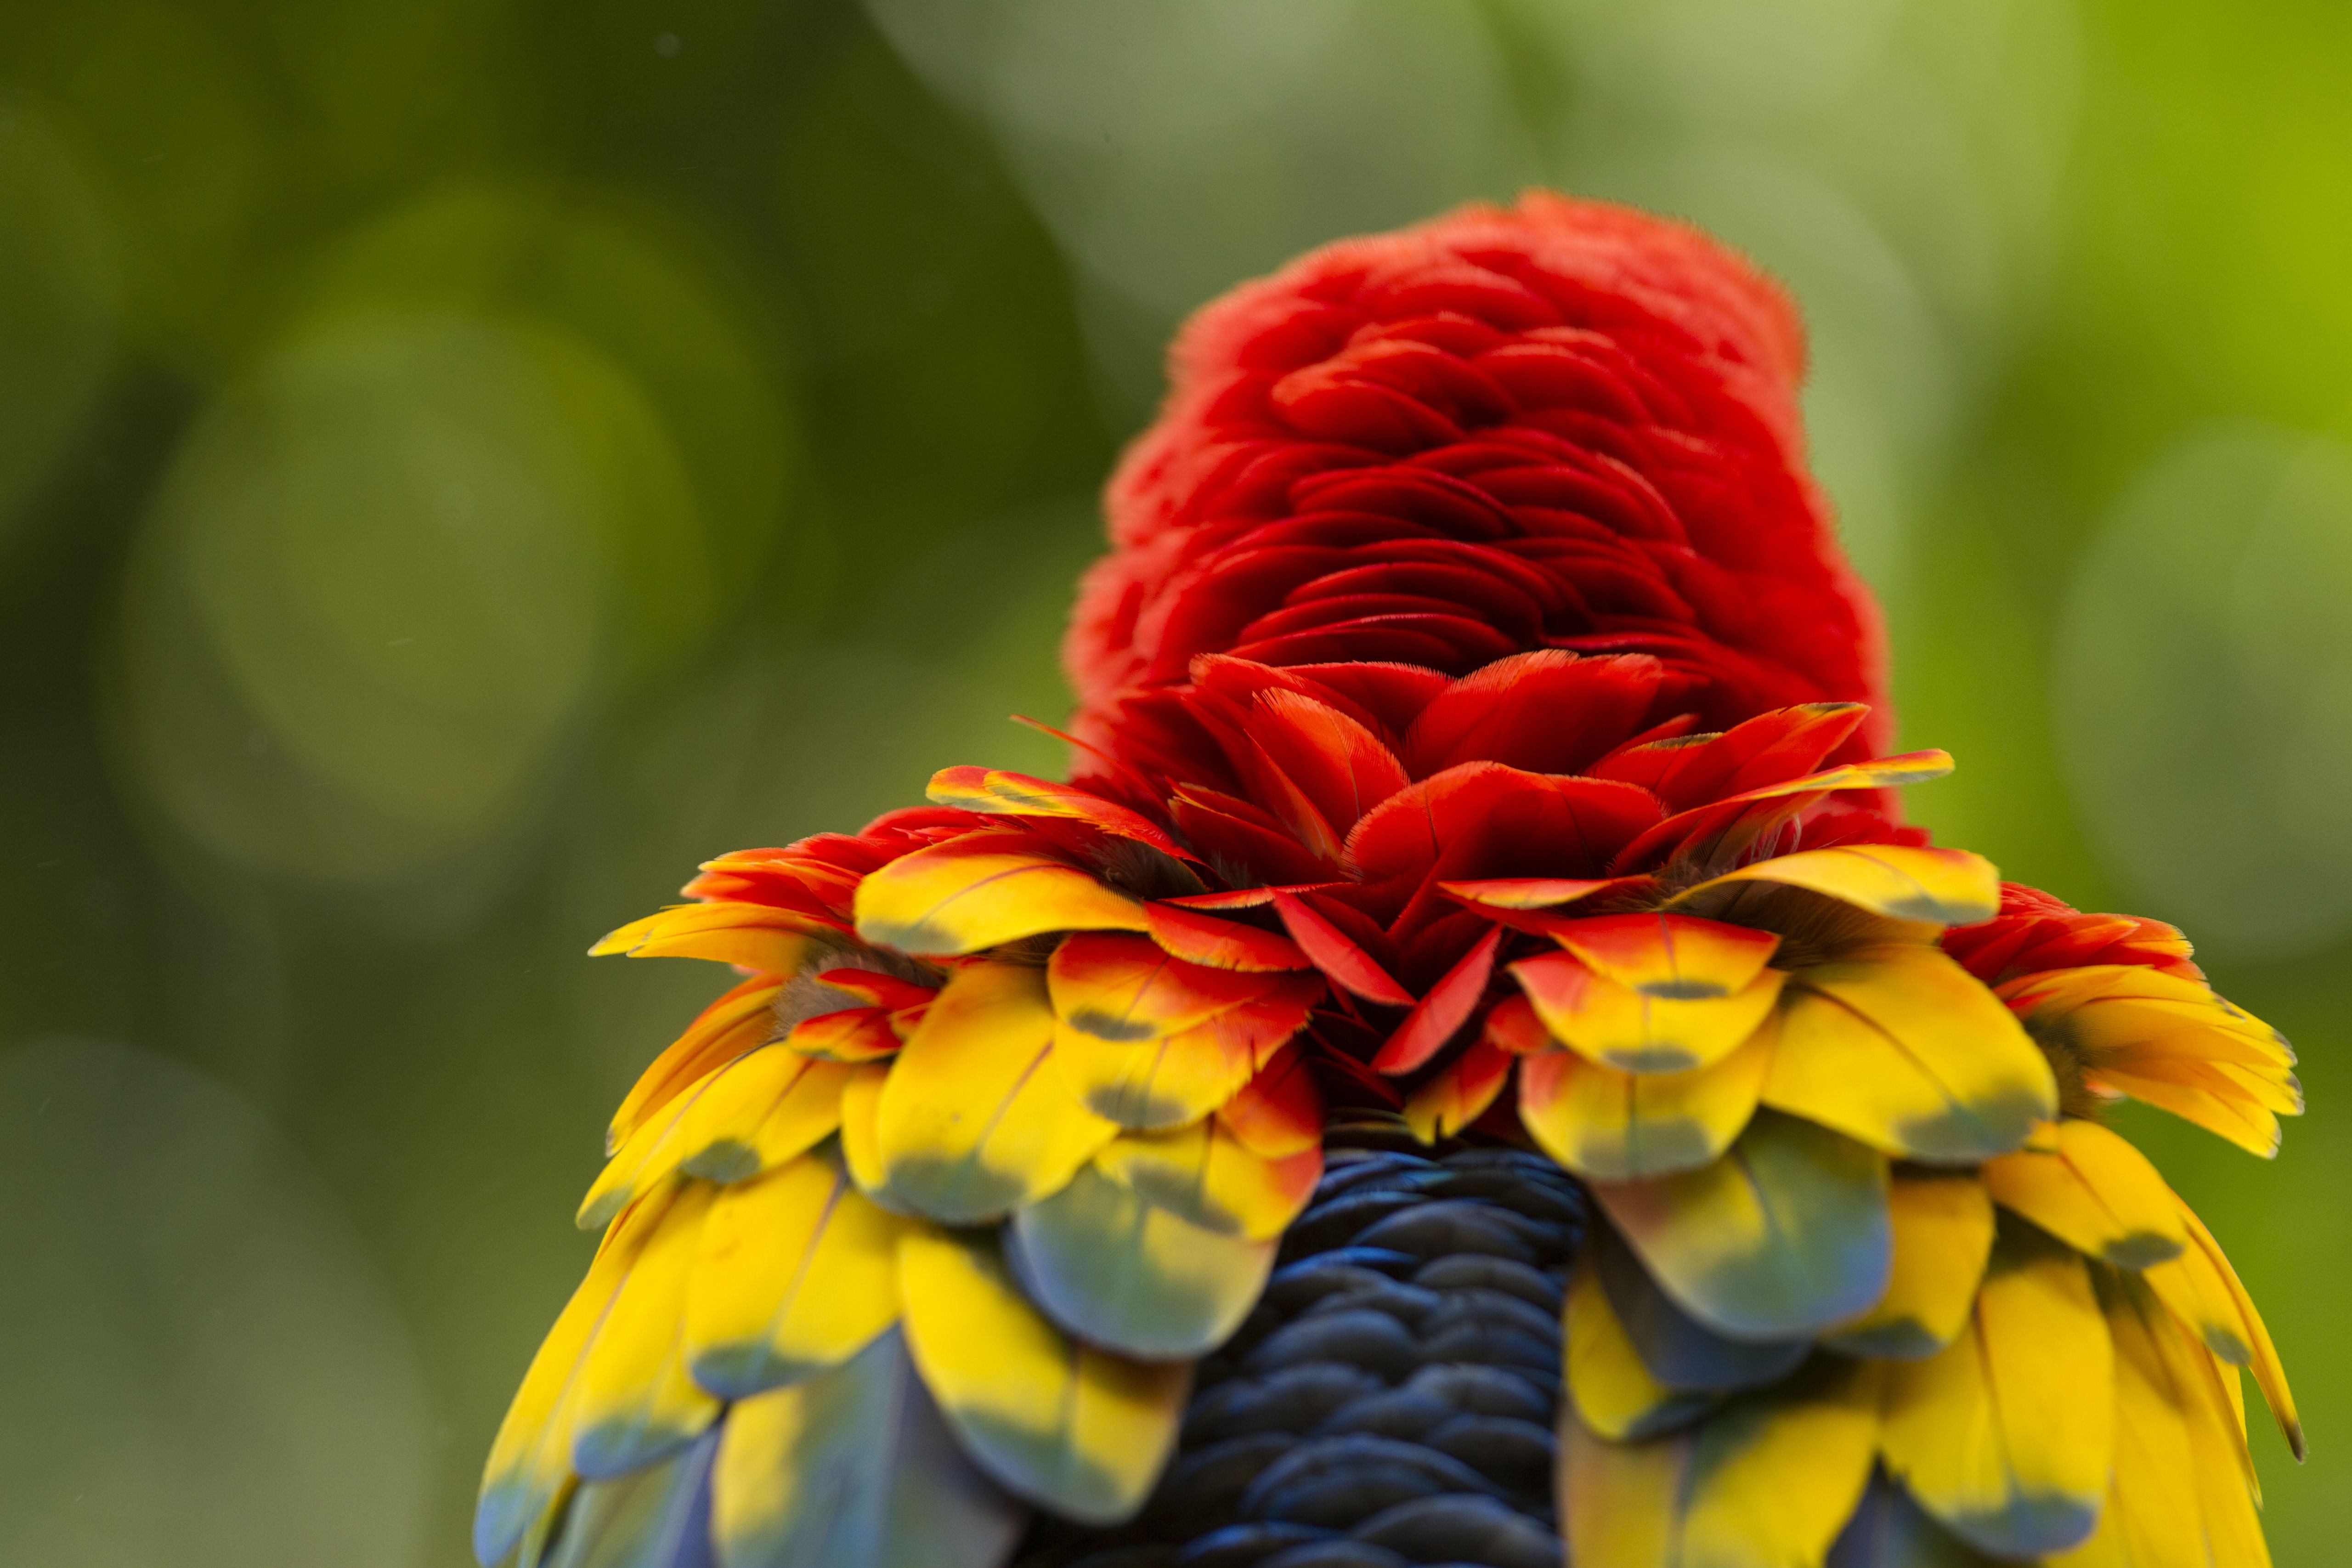 Scarlet Macaw fluffing feathers